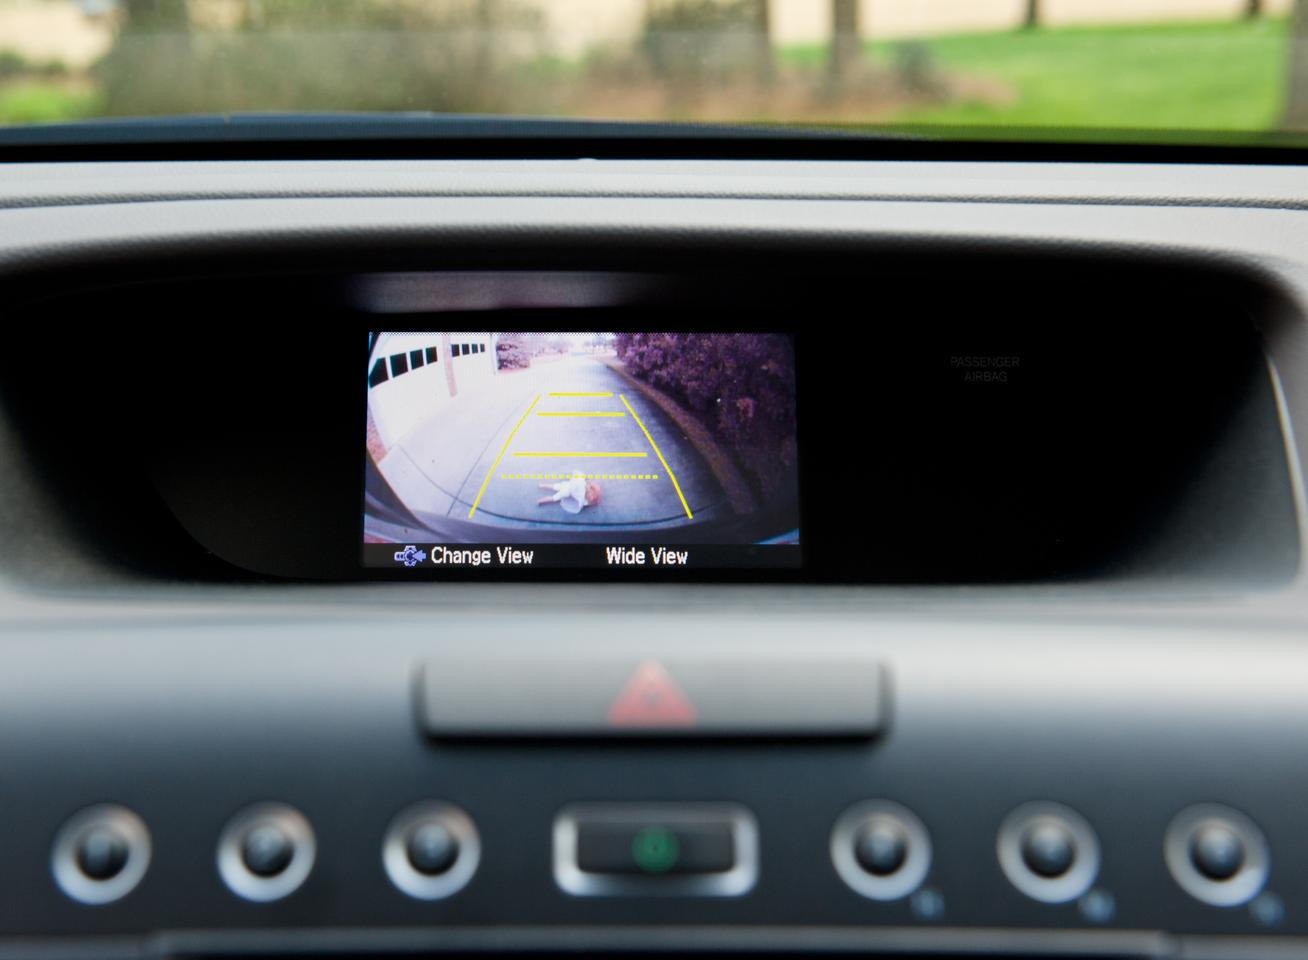 Rearview camera systems will be mandatory on new vehicles in the US from May 2018 (Photo: Shutterstock)